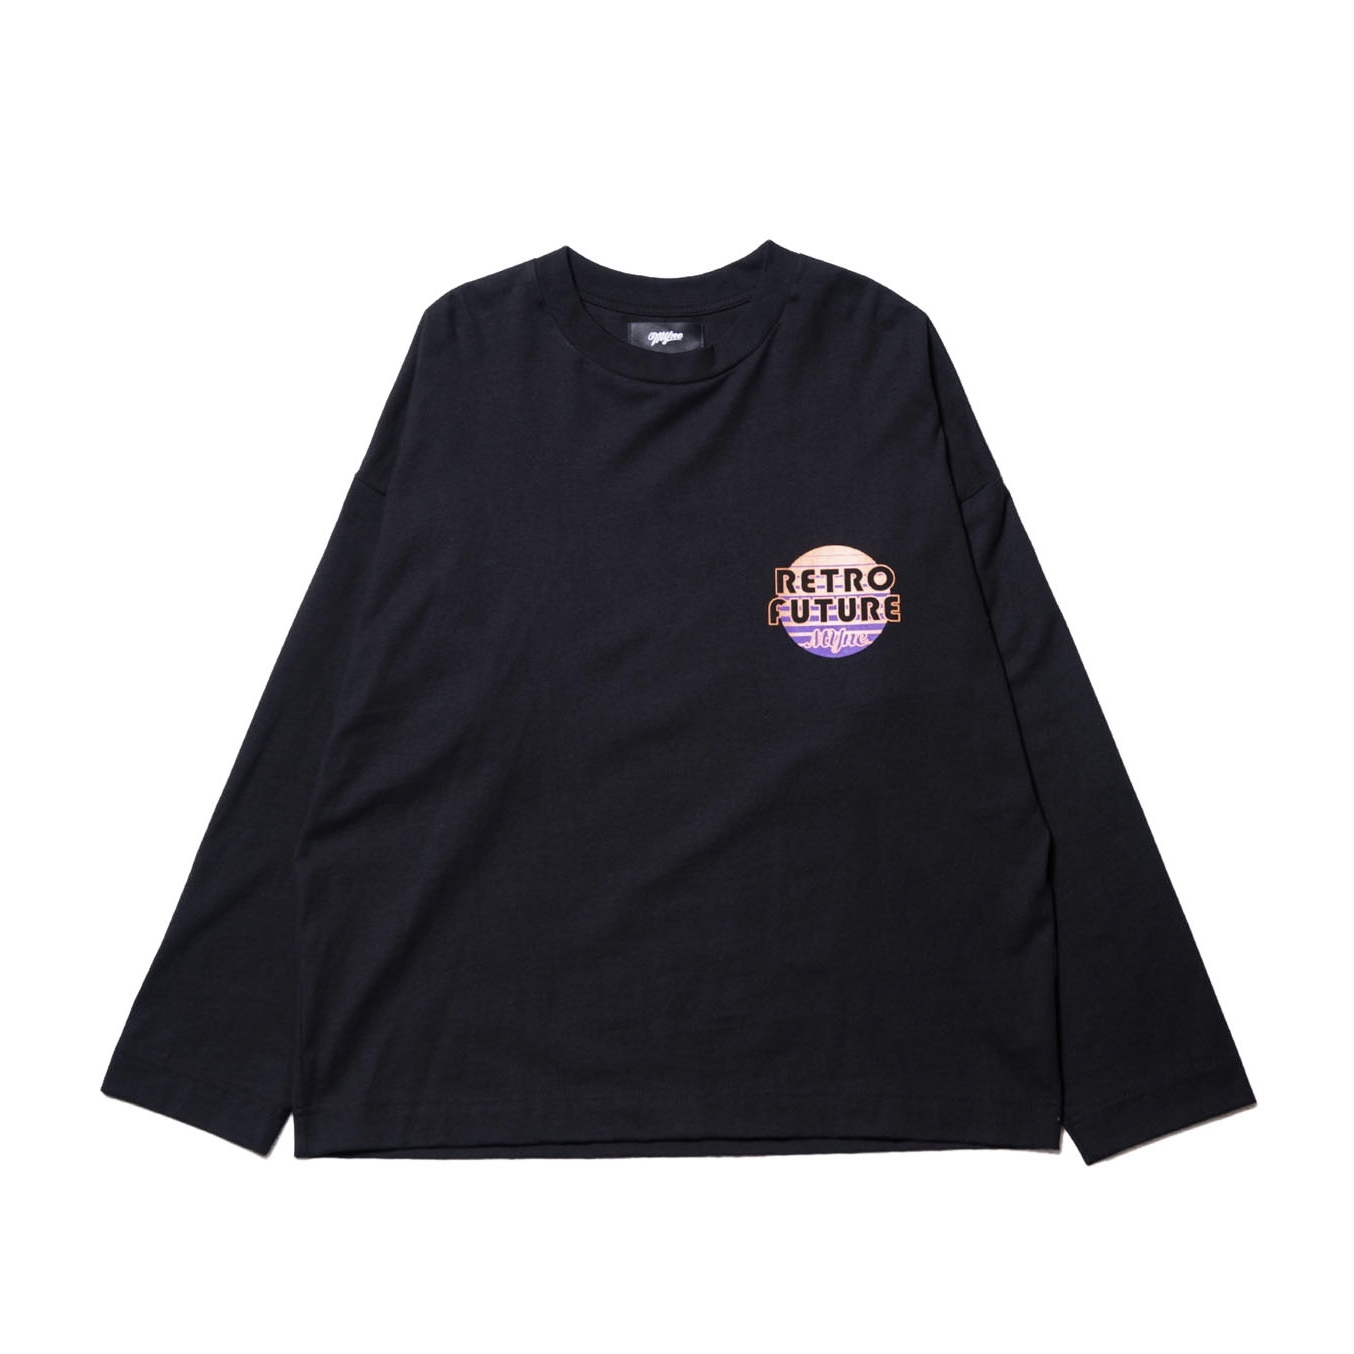 RETRO FUTURE L/S T-shirt / BLACK - 画像1